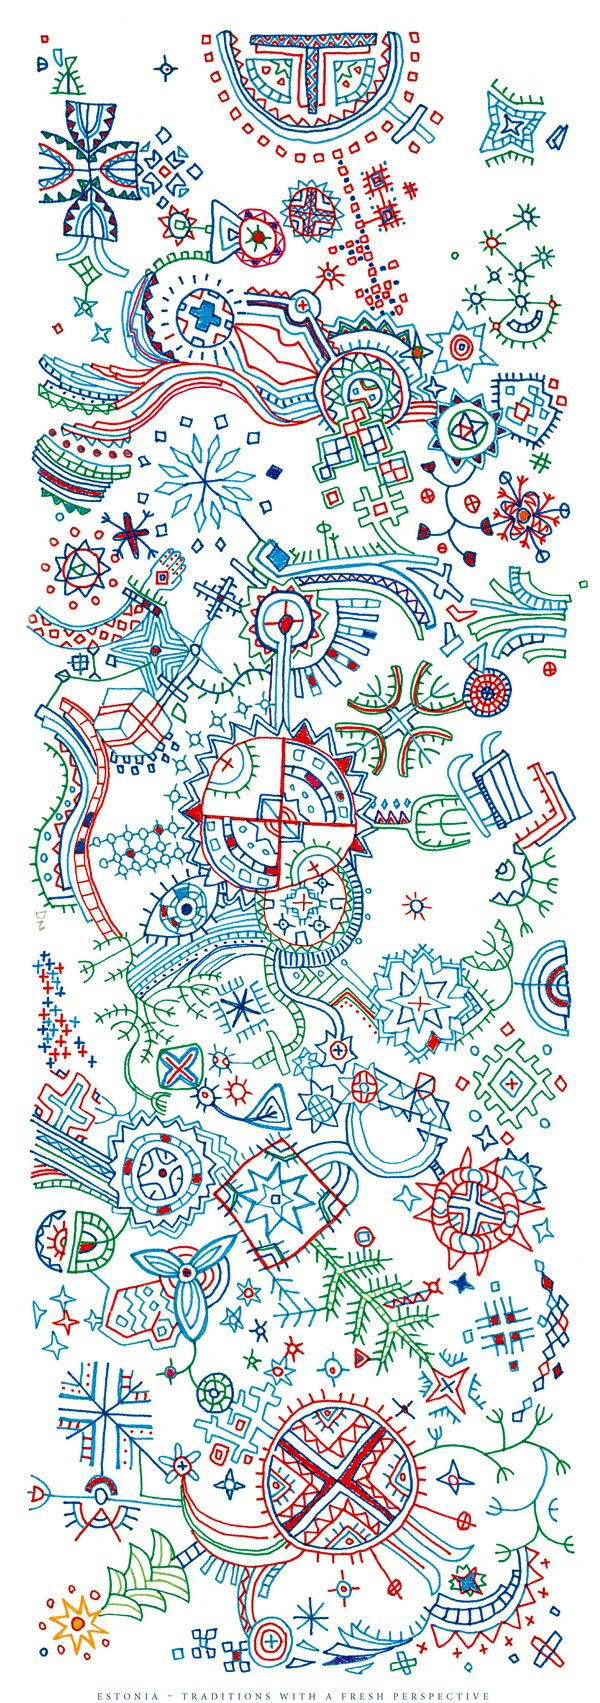 This is just gorgeous. Based on Estonian folk art. Amazing how beautiful something simple can be.